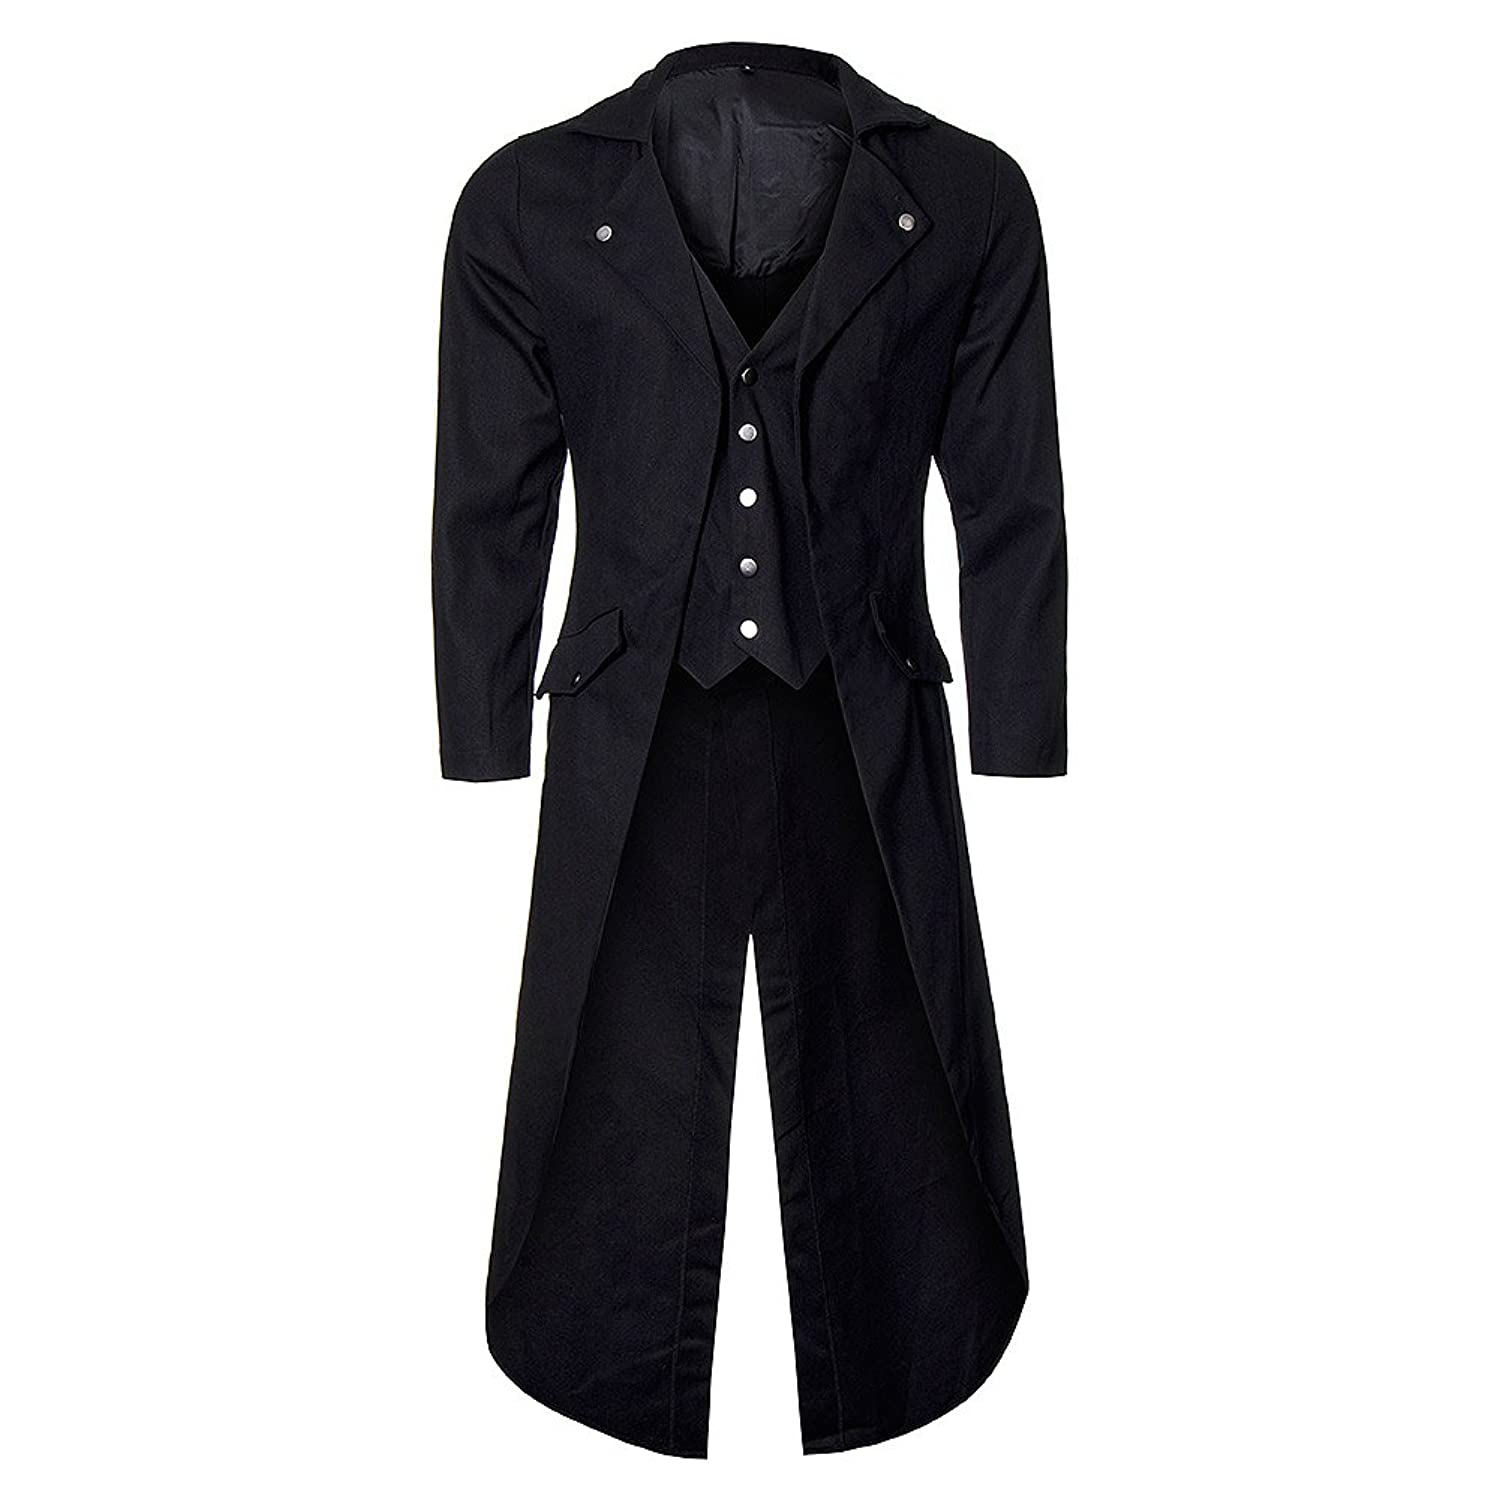 Men's Steampunk Clothing, Costumes, Fashion Banned Unisex-adults Frock Tail Coat $99.16 AT vintagedancer.com